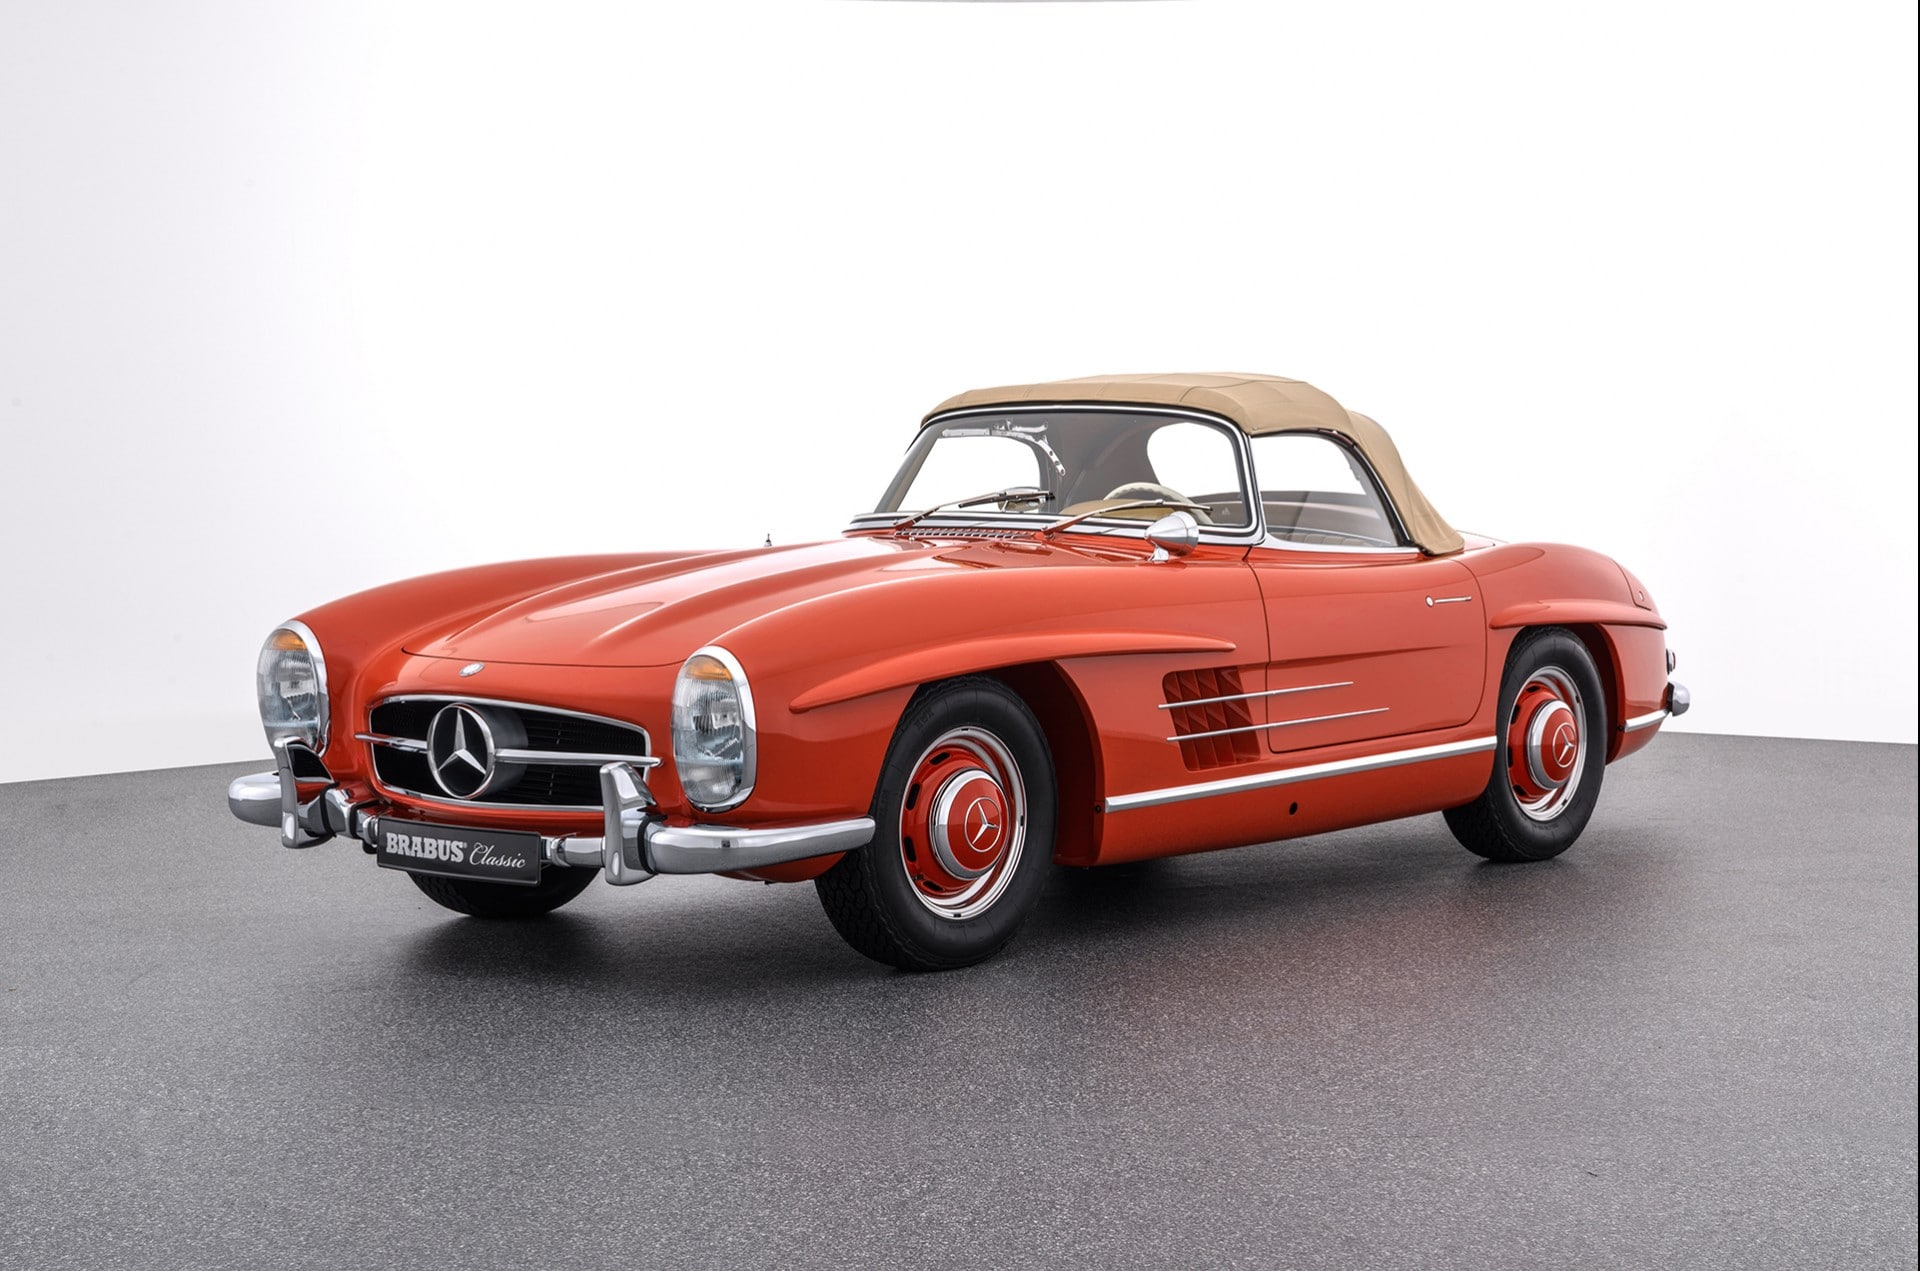 Brabus Classic – 300SL Gullwing Roadster Red